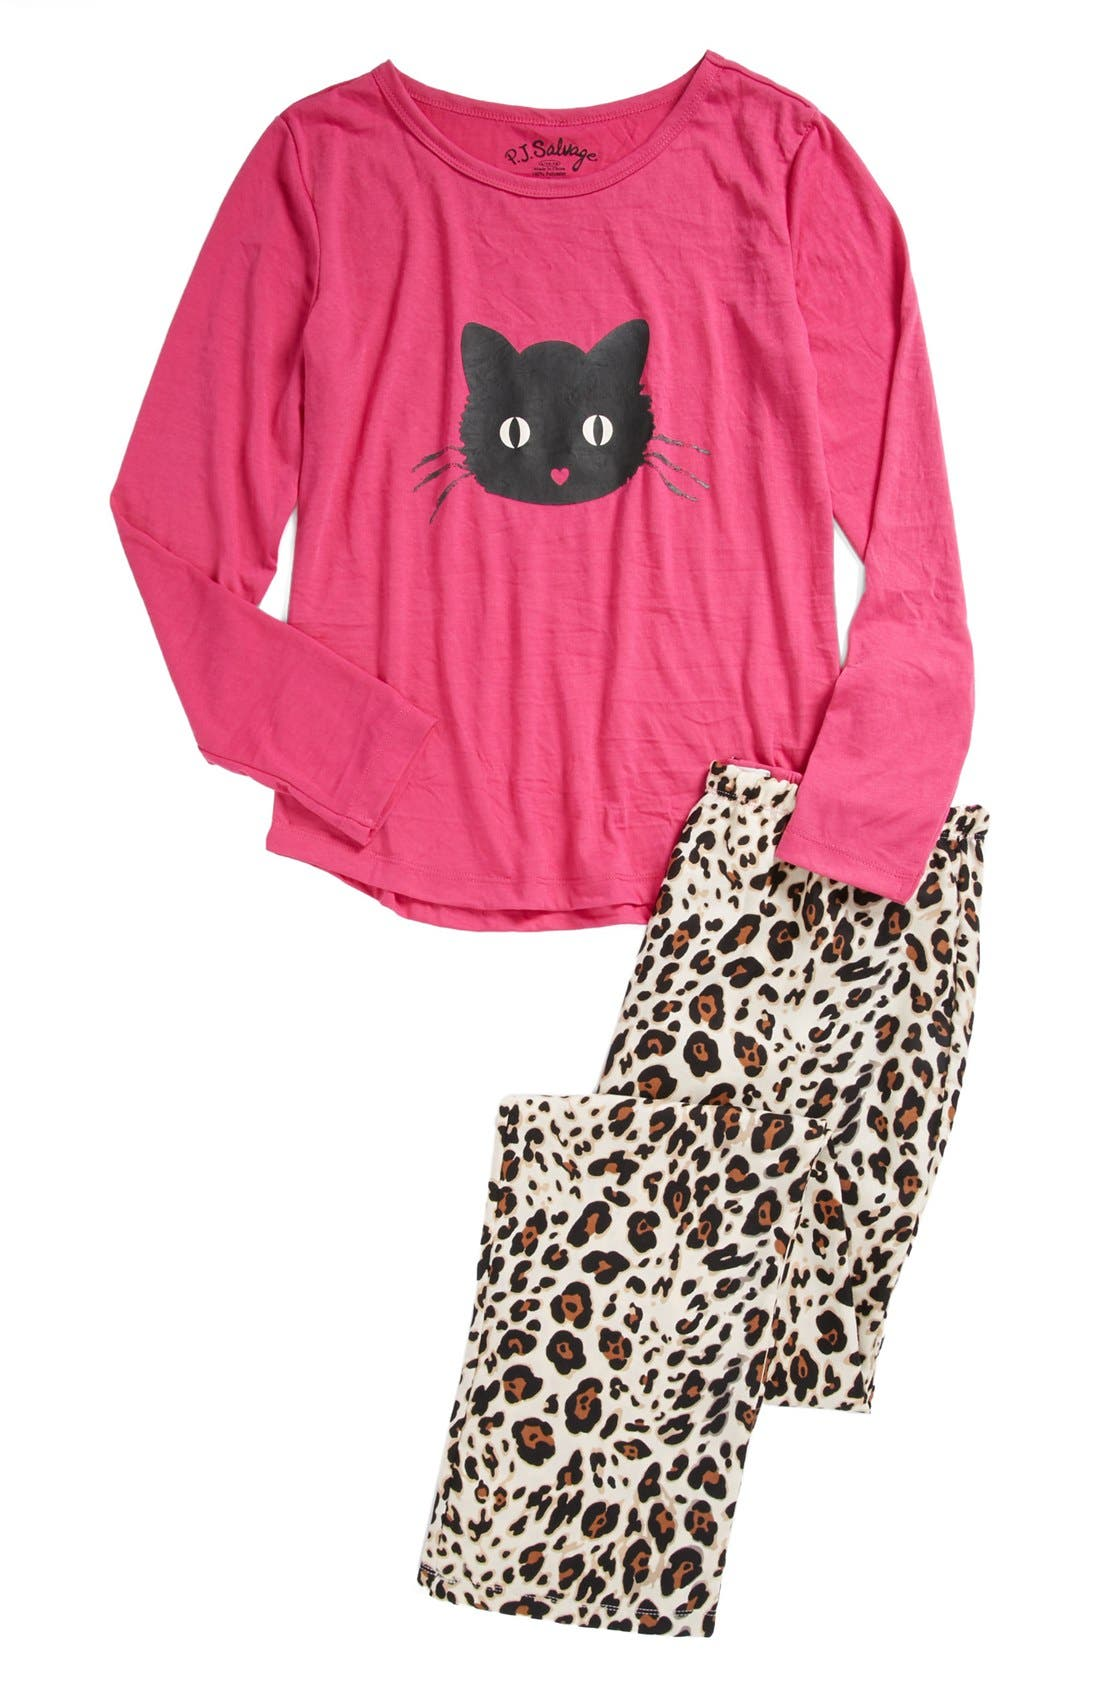 Alternate Image 1 Selected - PJ Salvage 'Here Kitty Kitty' Pajamas (Little Girls & Big Girls)